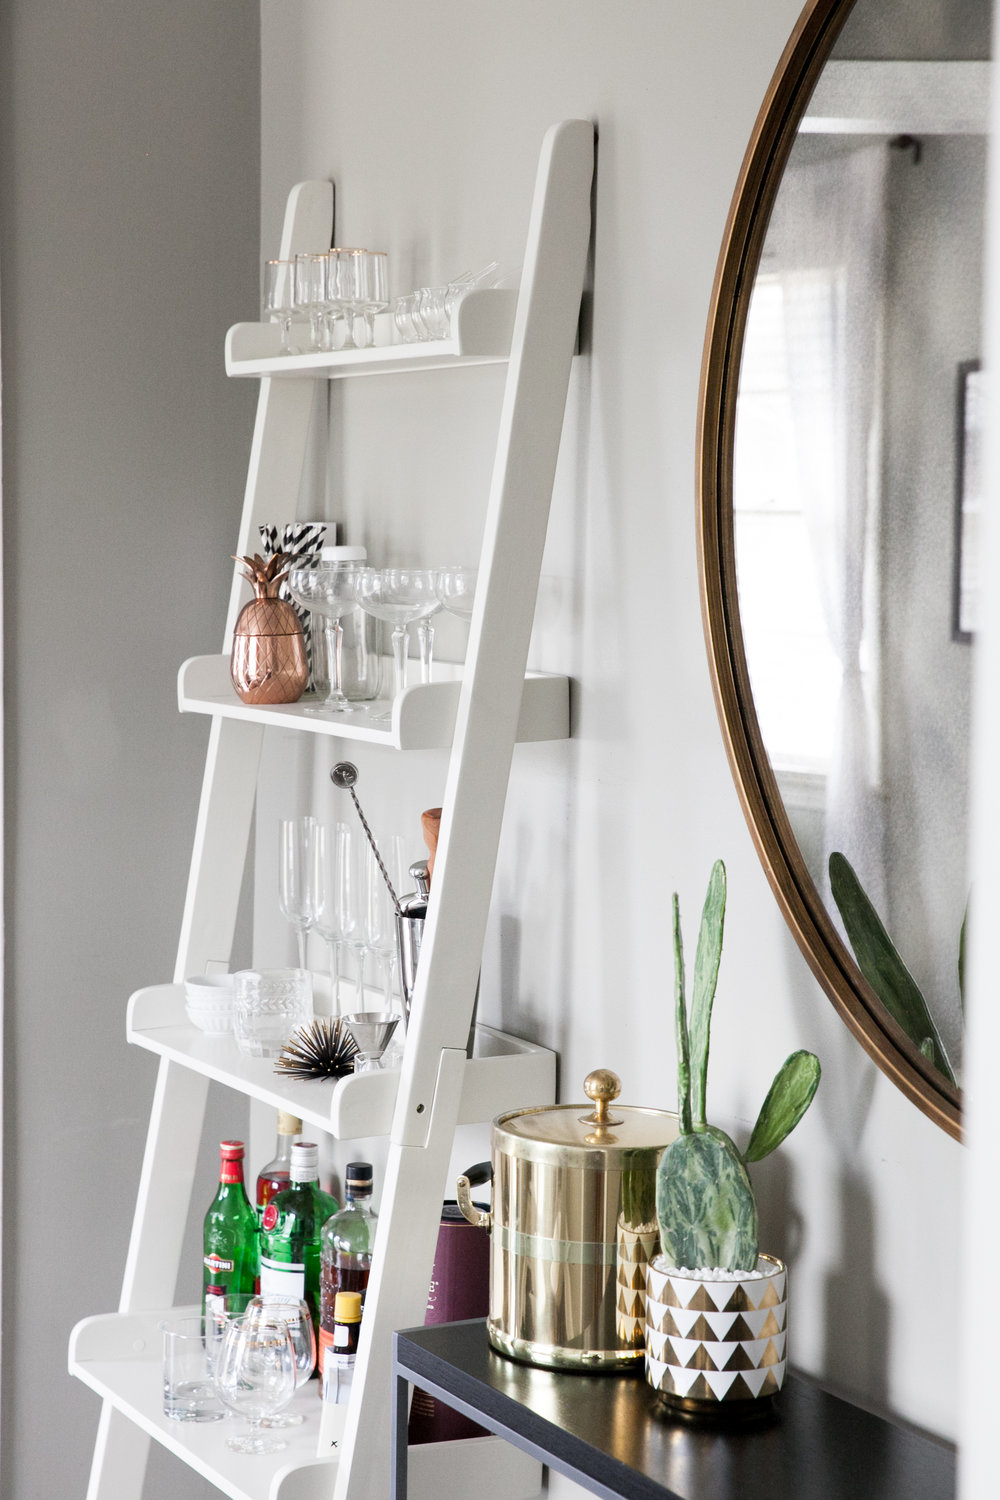 LisaDiederichPhotography_ApartmentTherapyHomeTour-9.jpg